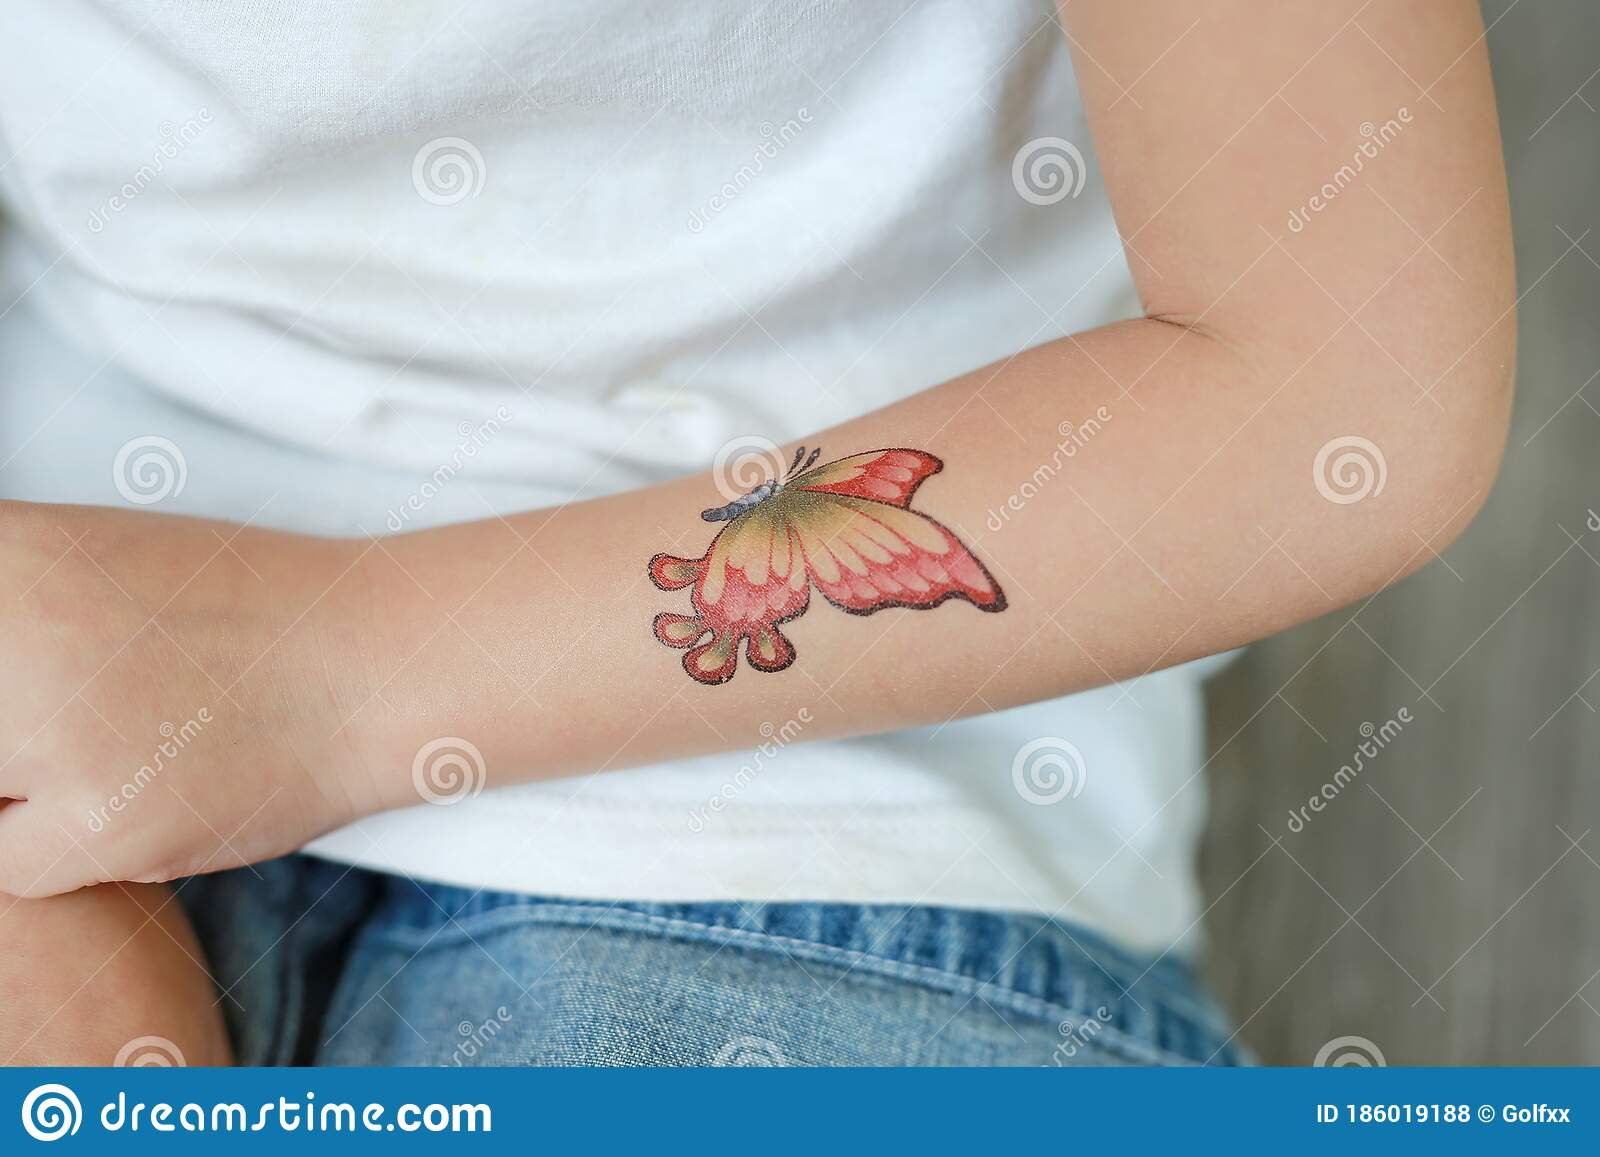 Close Up Little Child Girl With Butterfly Tattoo Sticker On Hand Dress Up Tattoos Stock Photo Image Of Attractive Animal 186019188